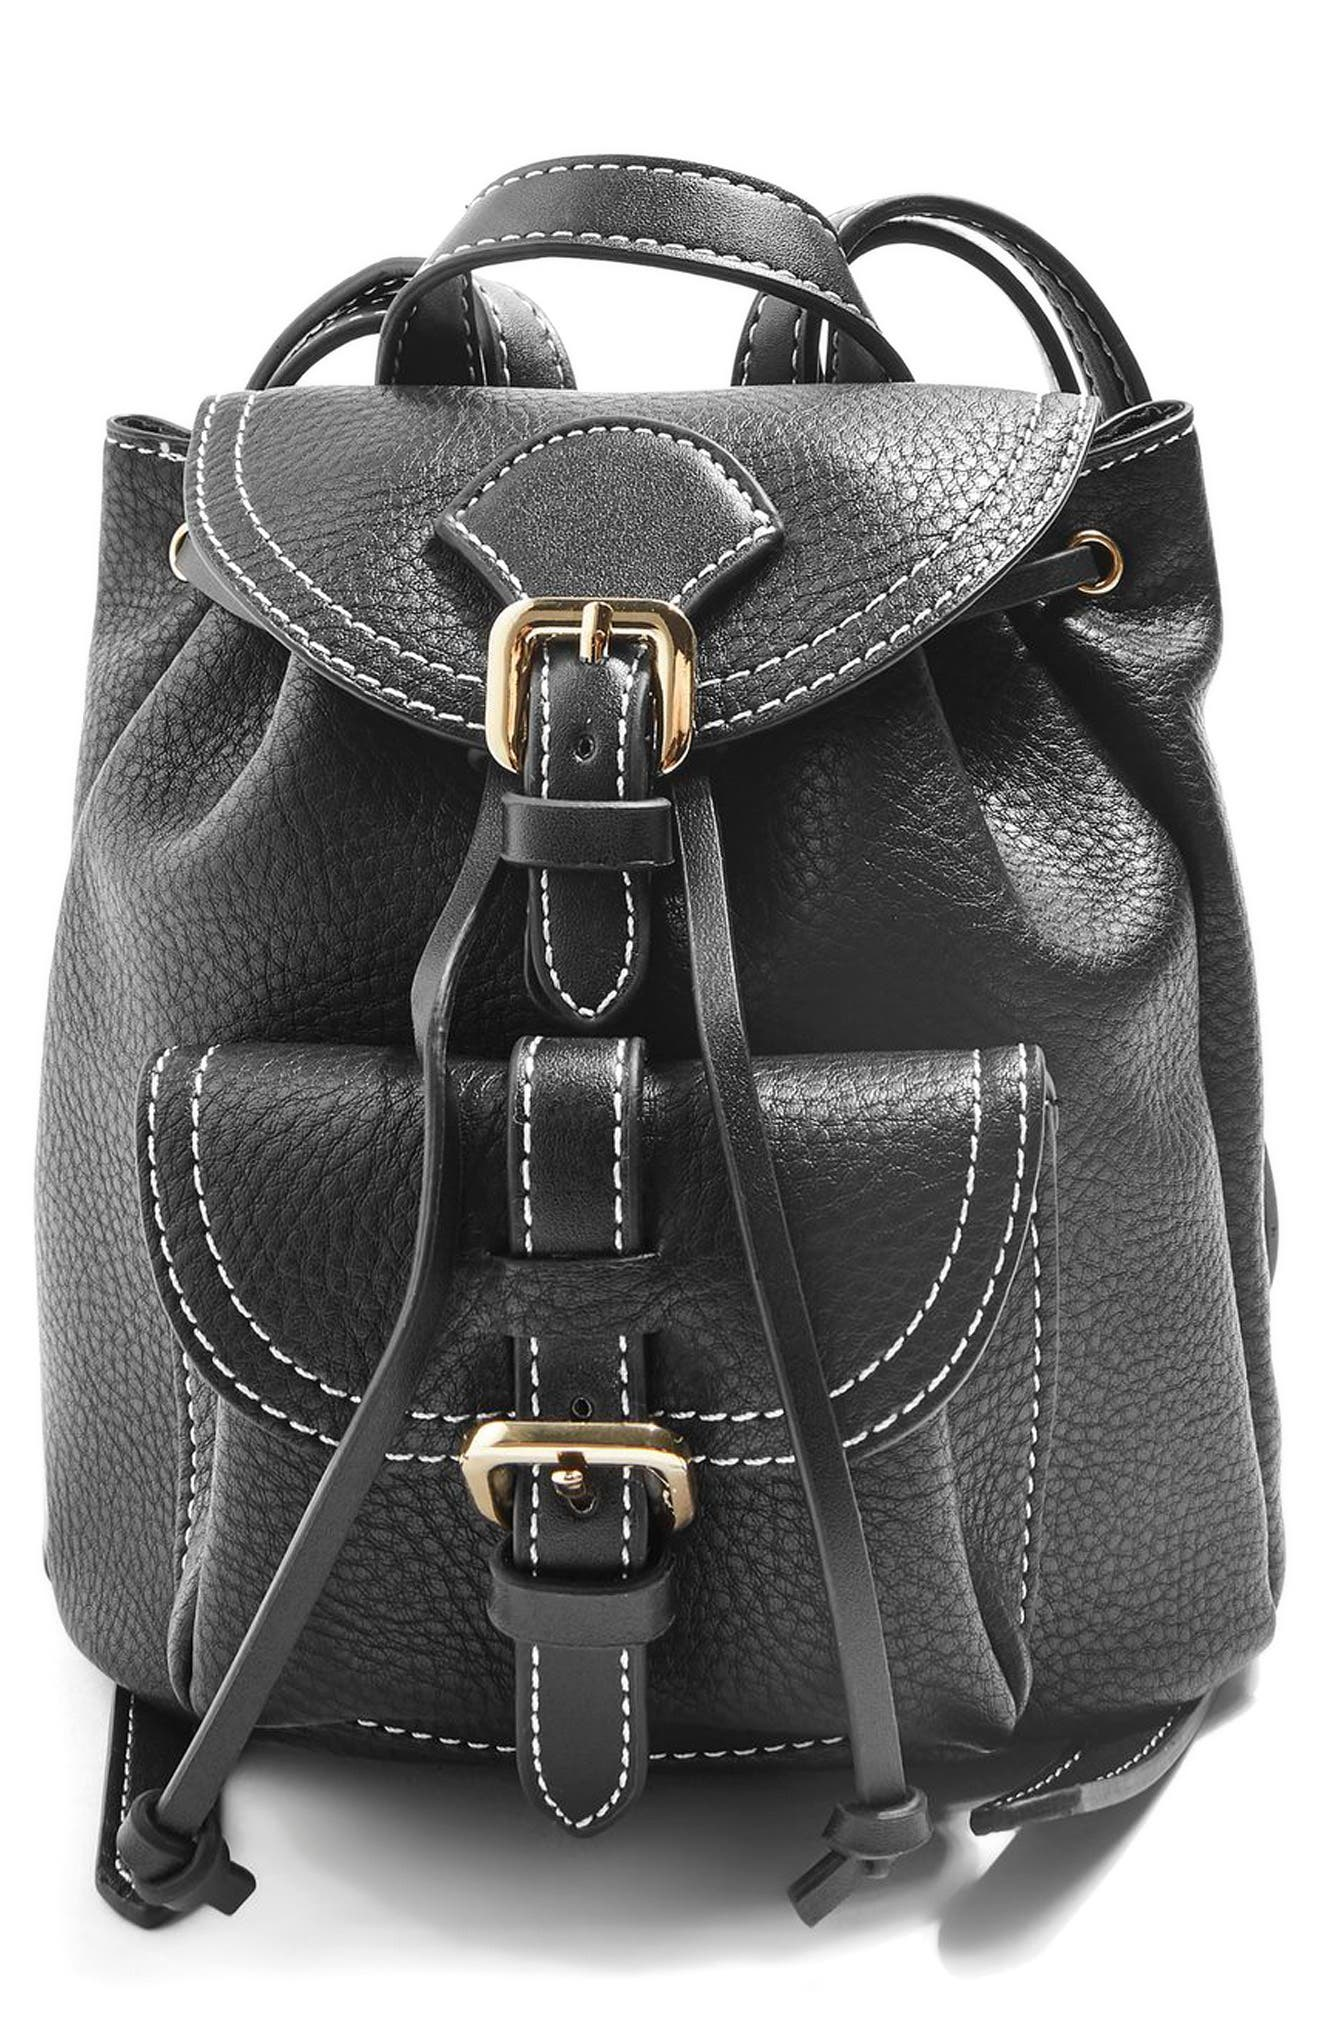 Topshop Bruno Super Mini Faux Leather Backpack